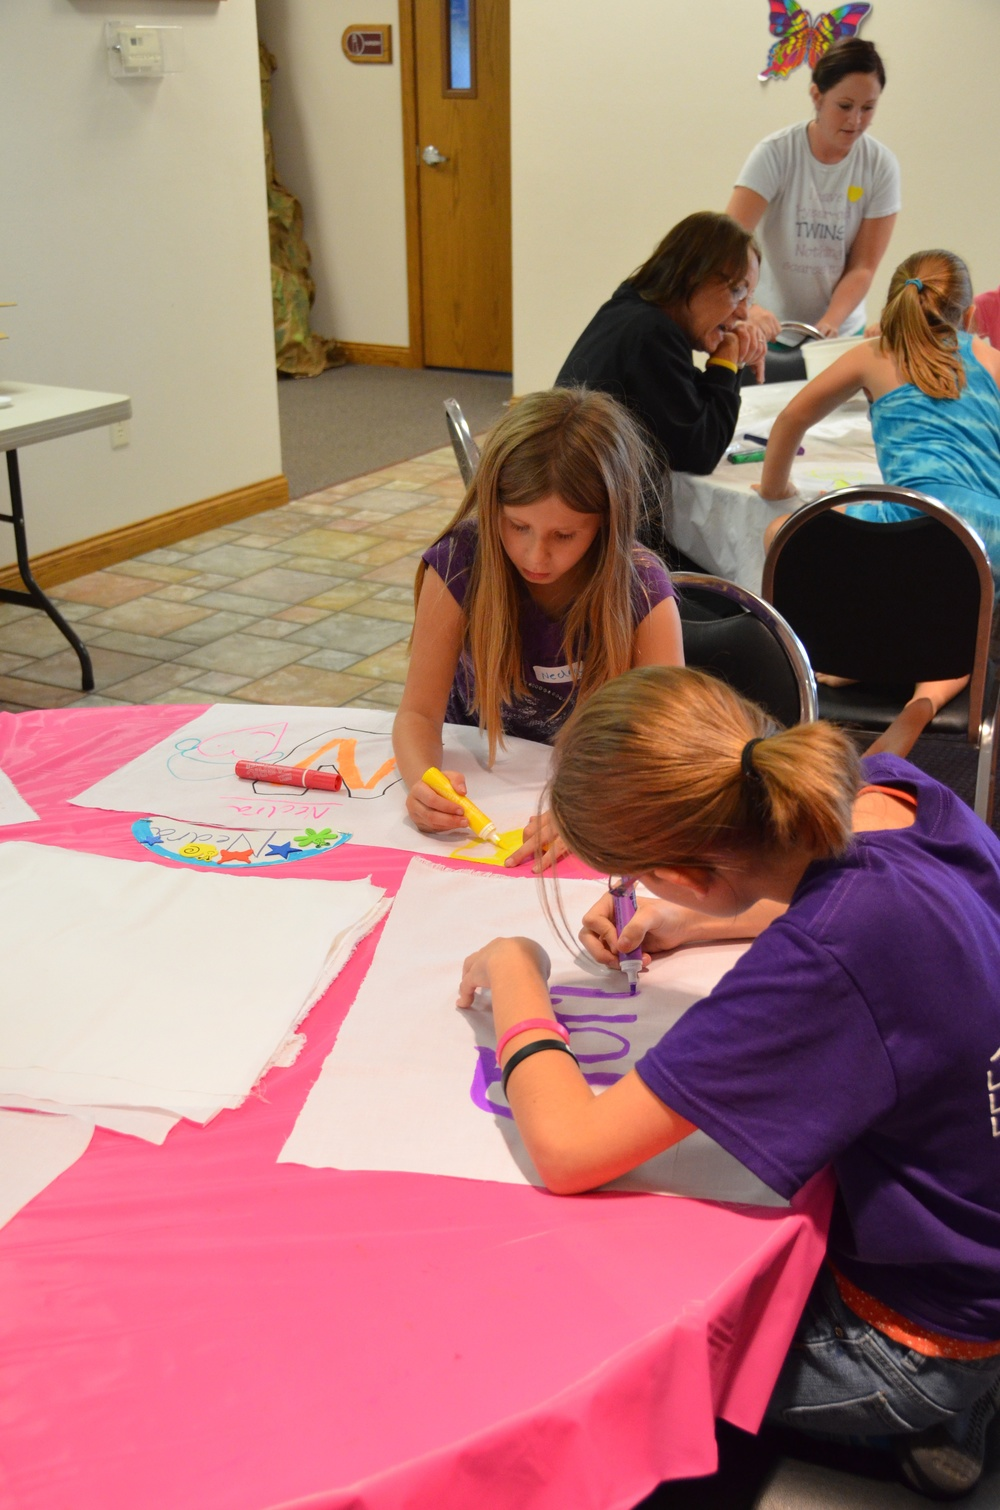 KIds ARt Church 9 12 2011   95312.jpg